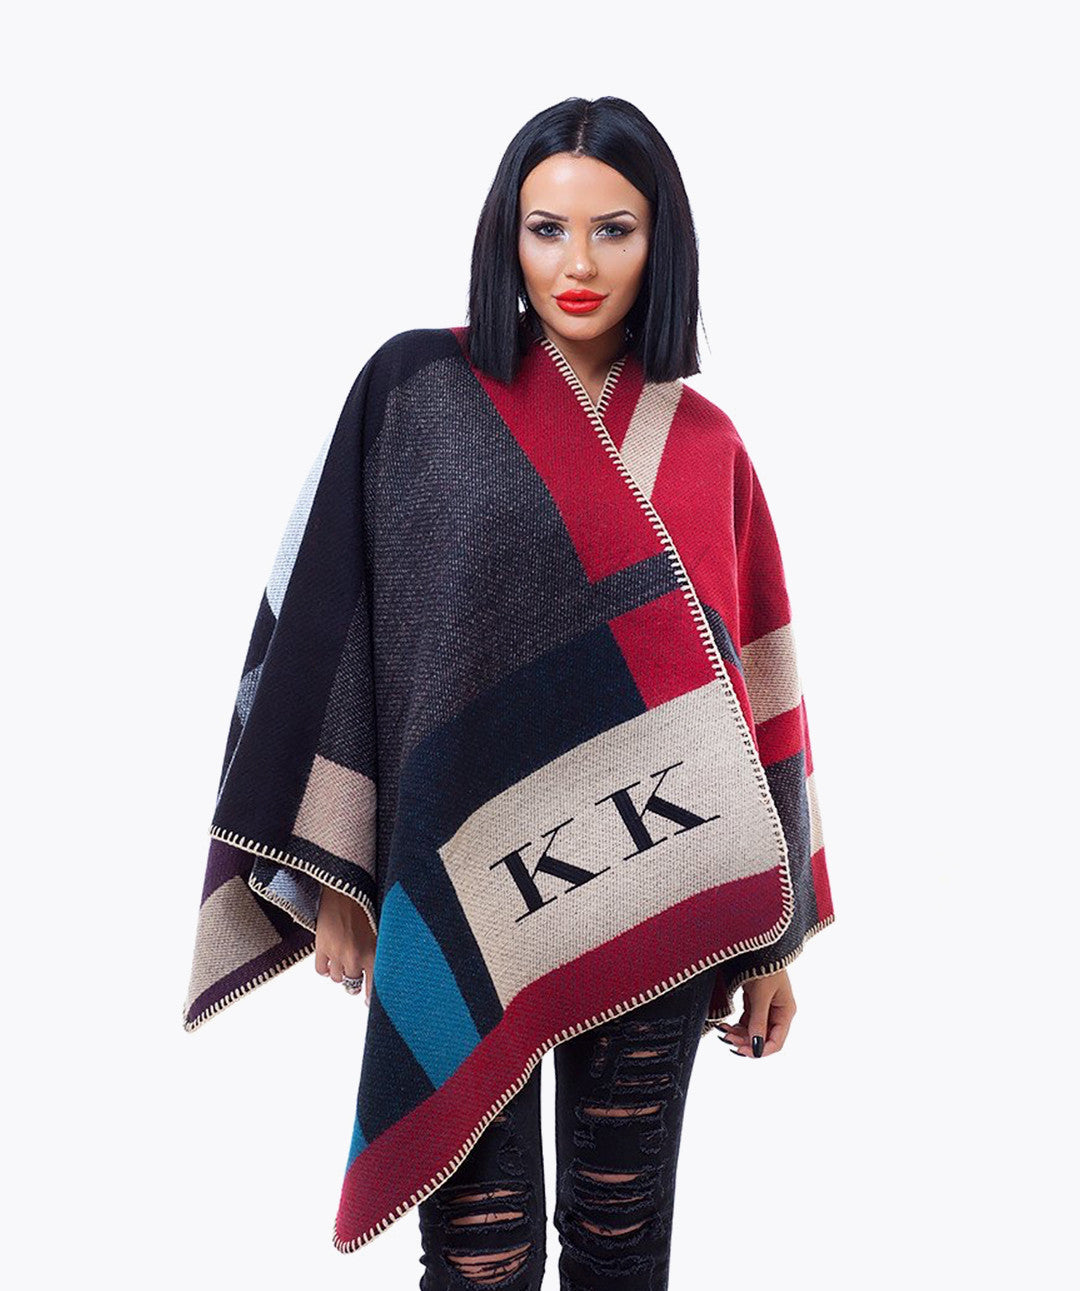 PERSONALISED MONOGRAMMED CAPE - KENSINGTON